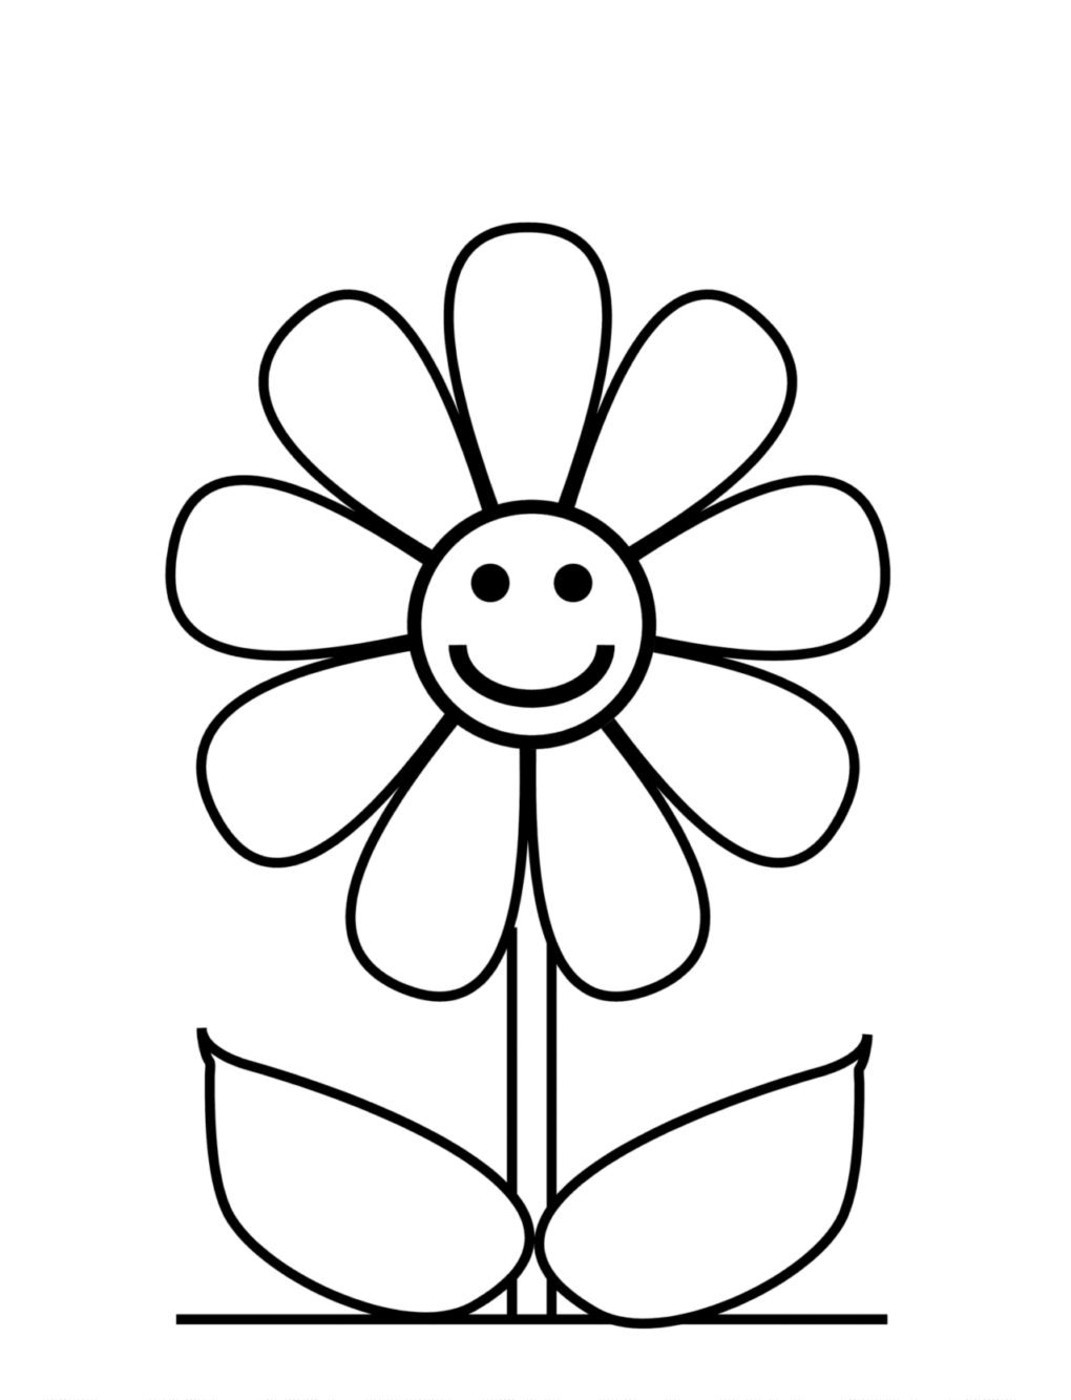 1071x1400 Finest Sunflower Coloring Page Sunflower Coloring Pages Prints